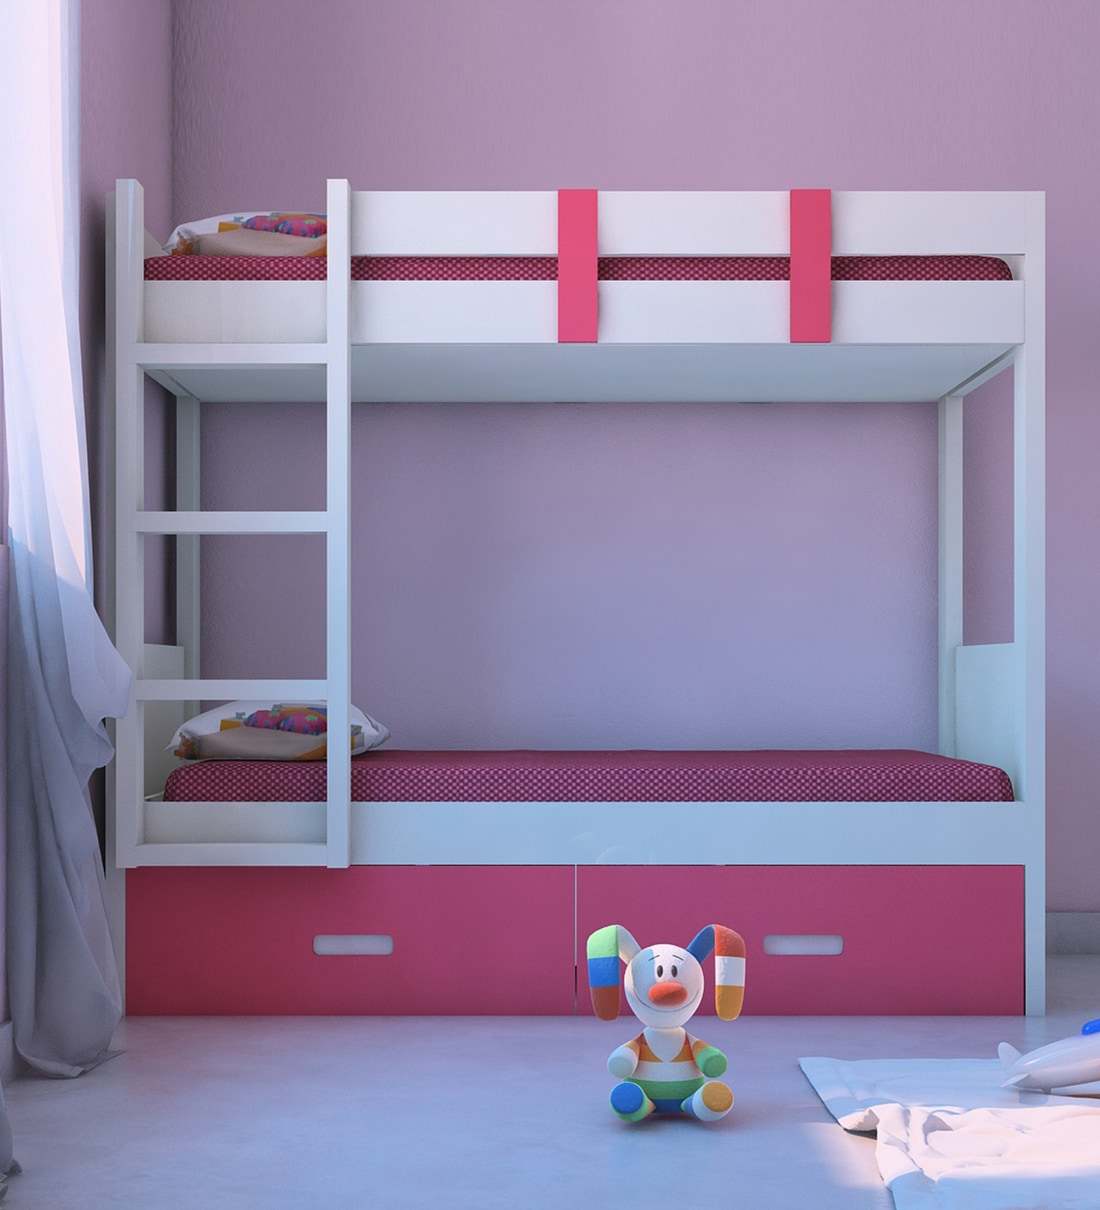 Picture of: Buy Adonica Bunk Bed With Storage In Barbie Pink Finish By Adona Online Standard Bunk Beds Bunk Beds Kids Furniture Pepperfry Product